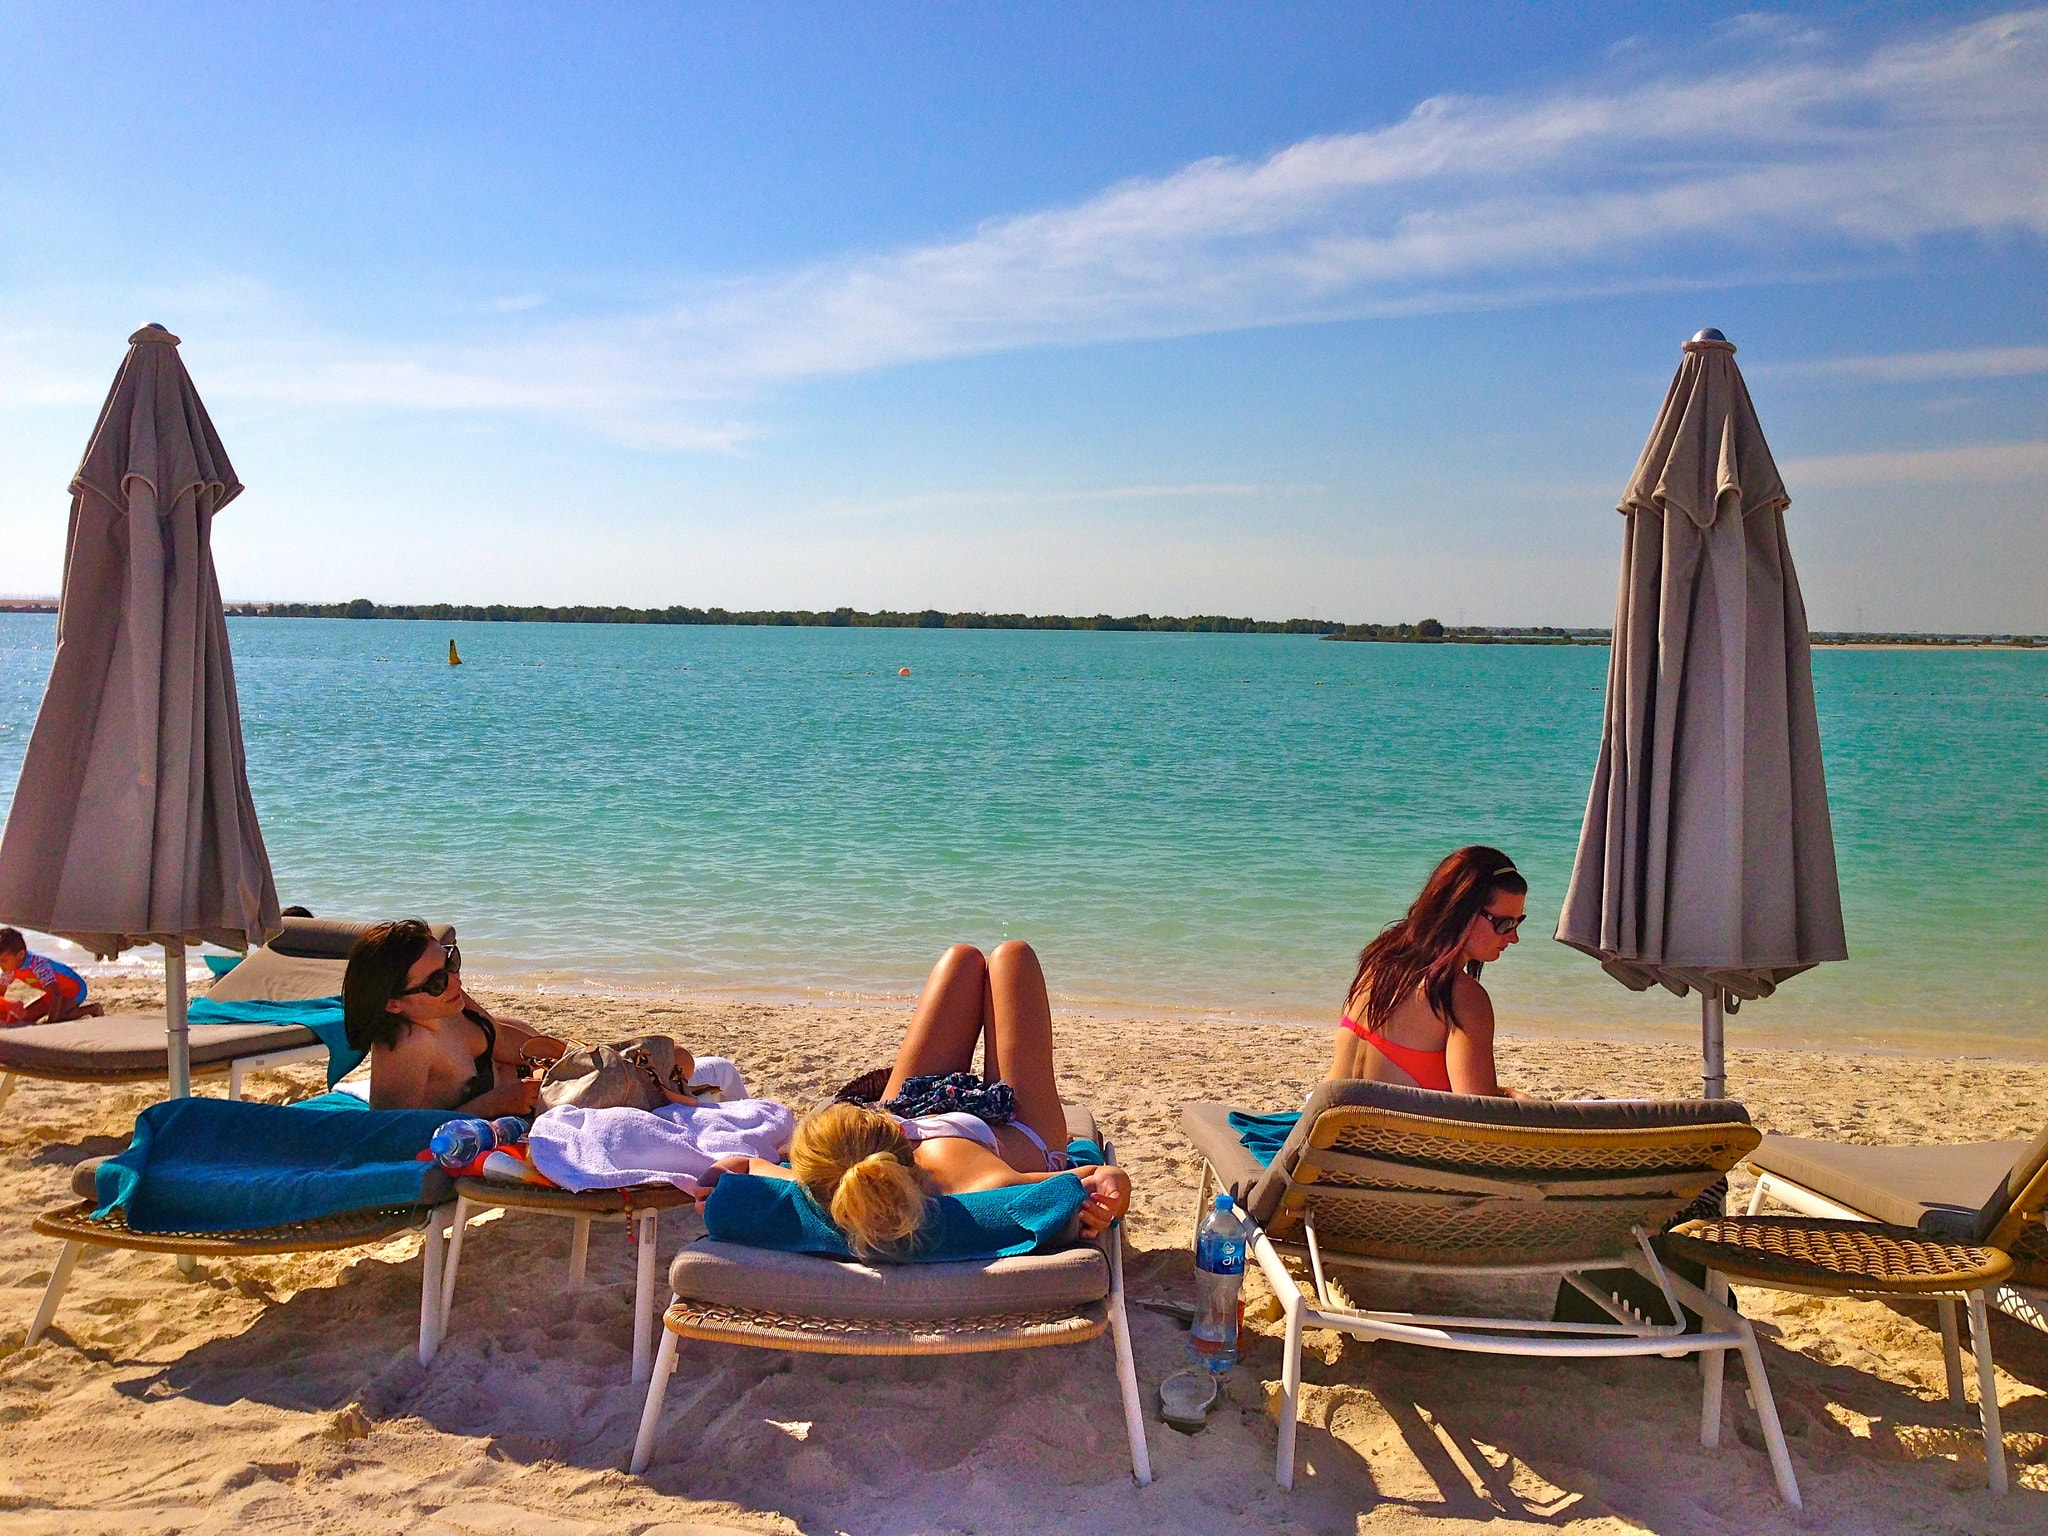 The Best Beaches To Visit In Abu Dhabi